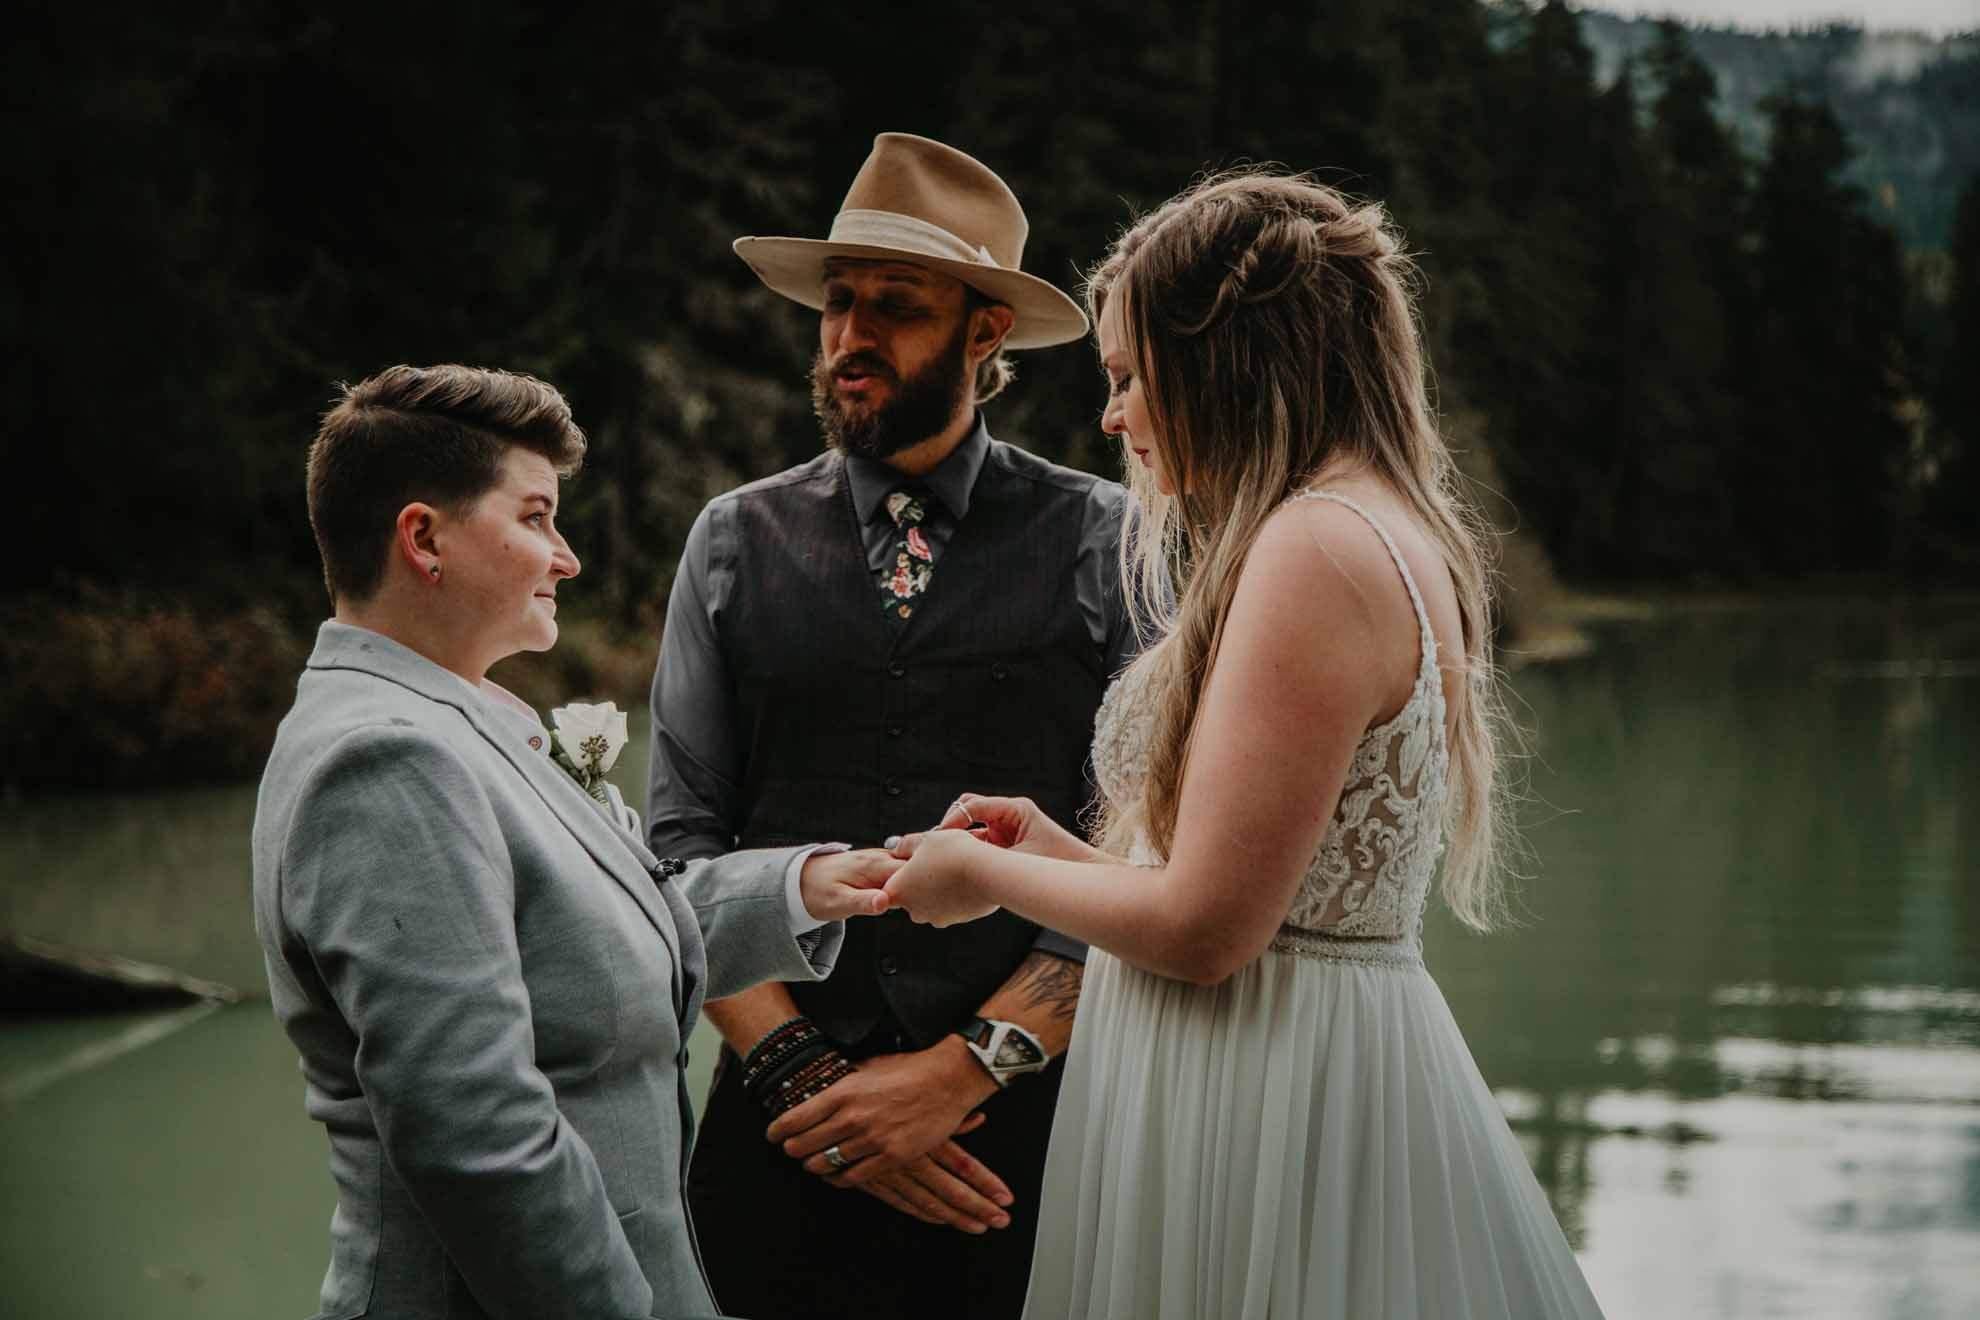 Young, Hip & Married photos lesbian gay lgbtq+ couple mrs & mrs wedding elopement British Columbia Canada Dancing With Her (1)